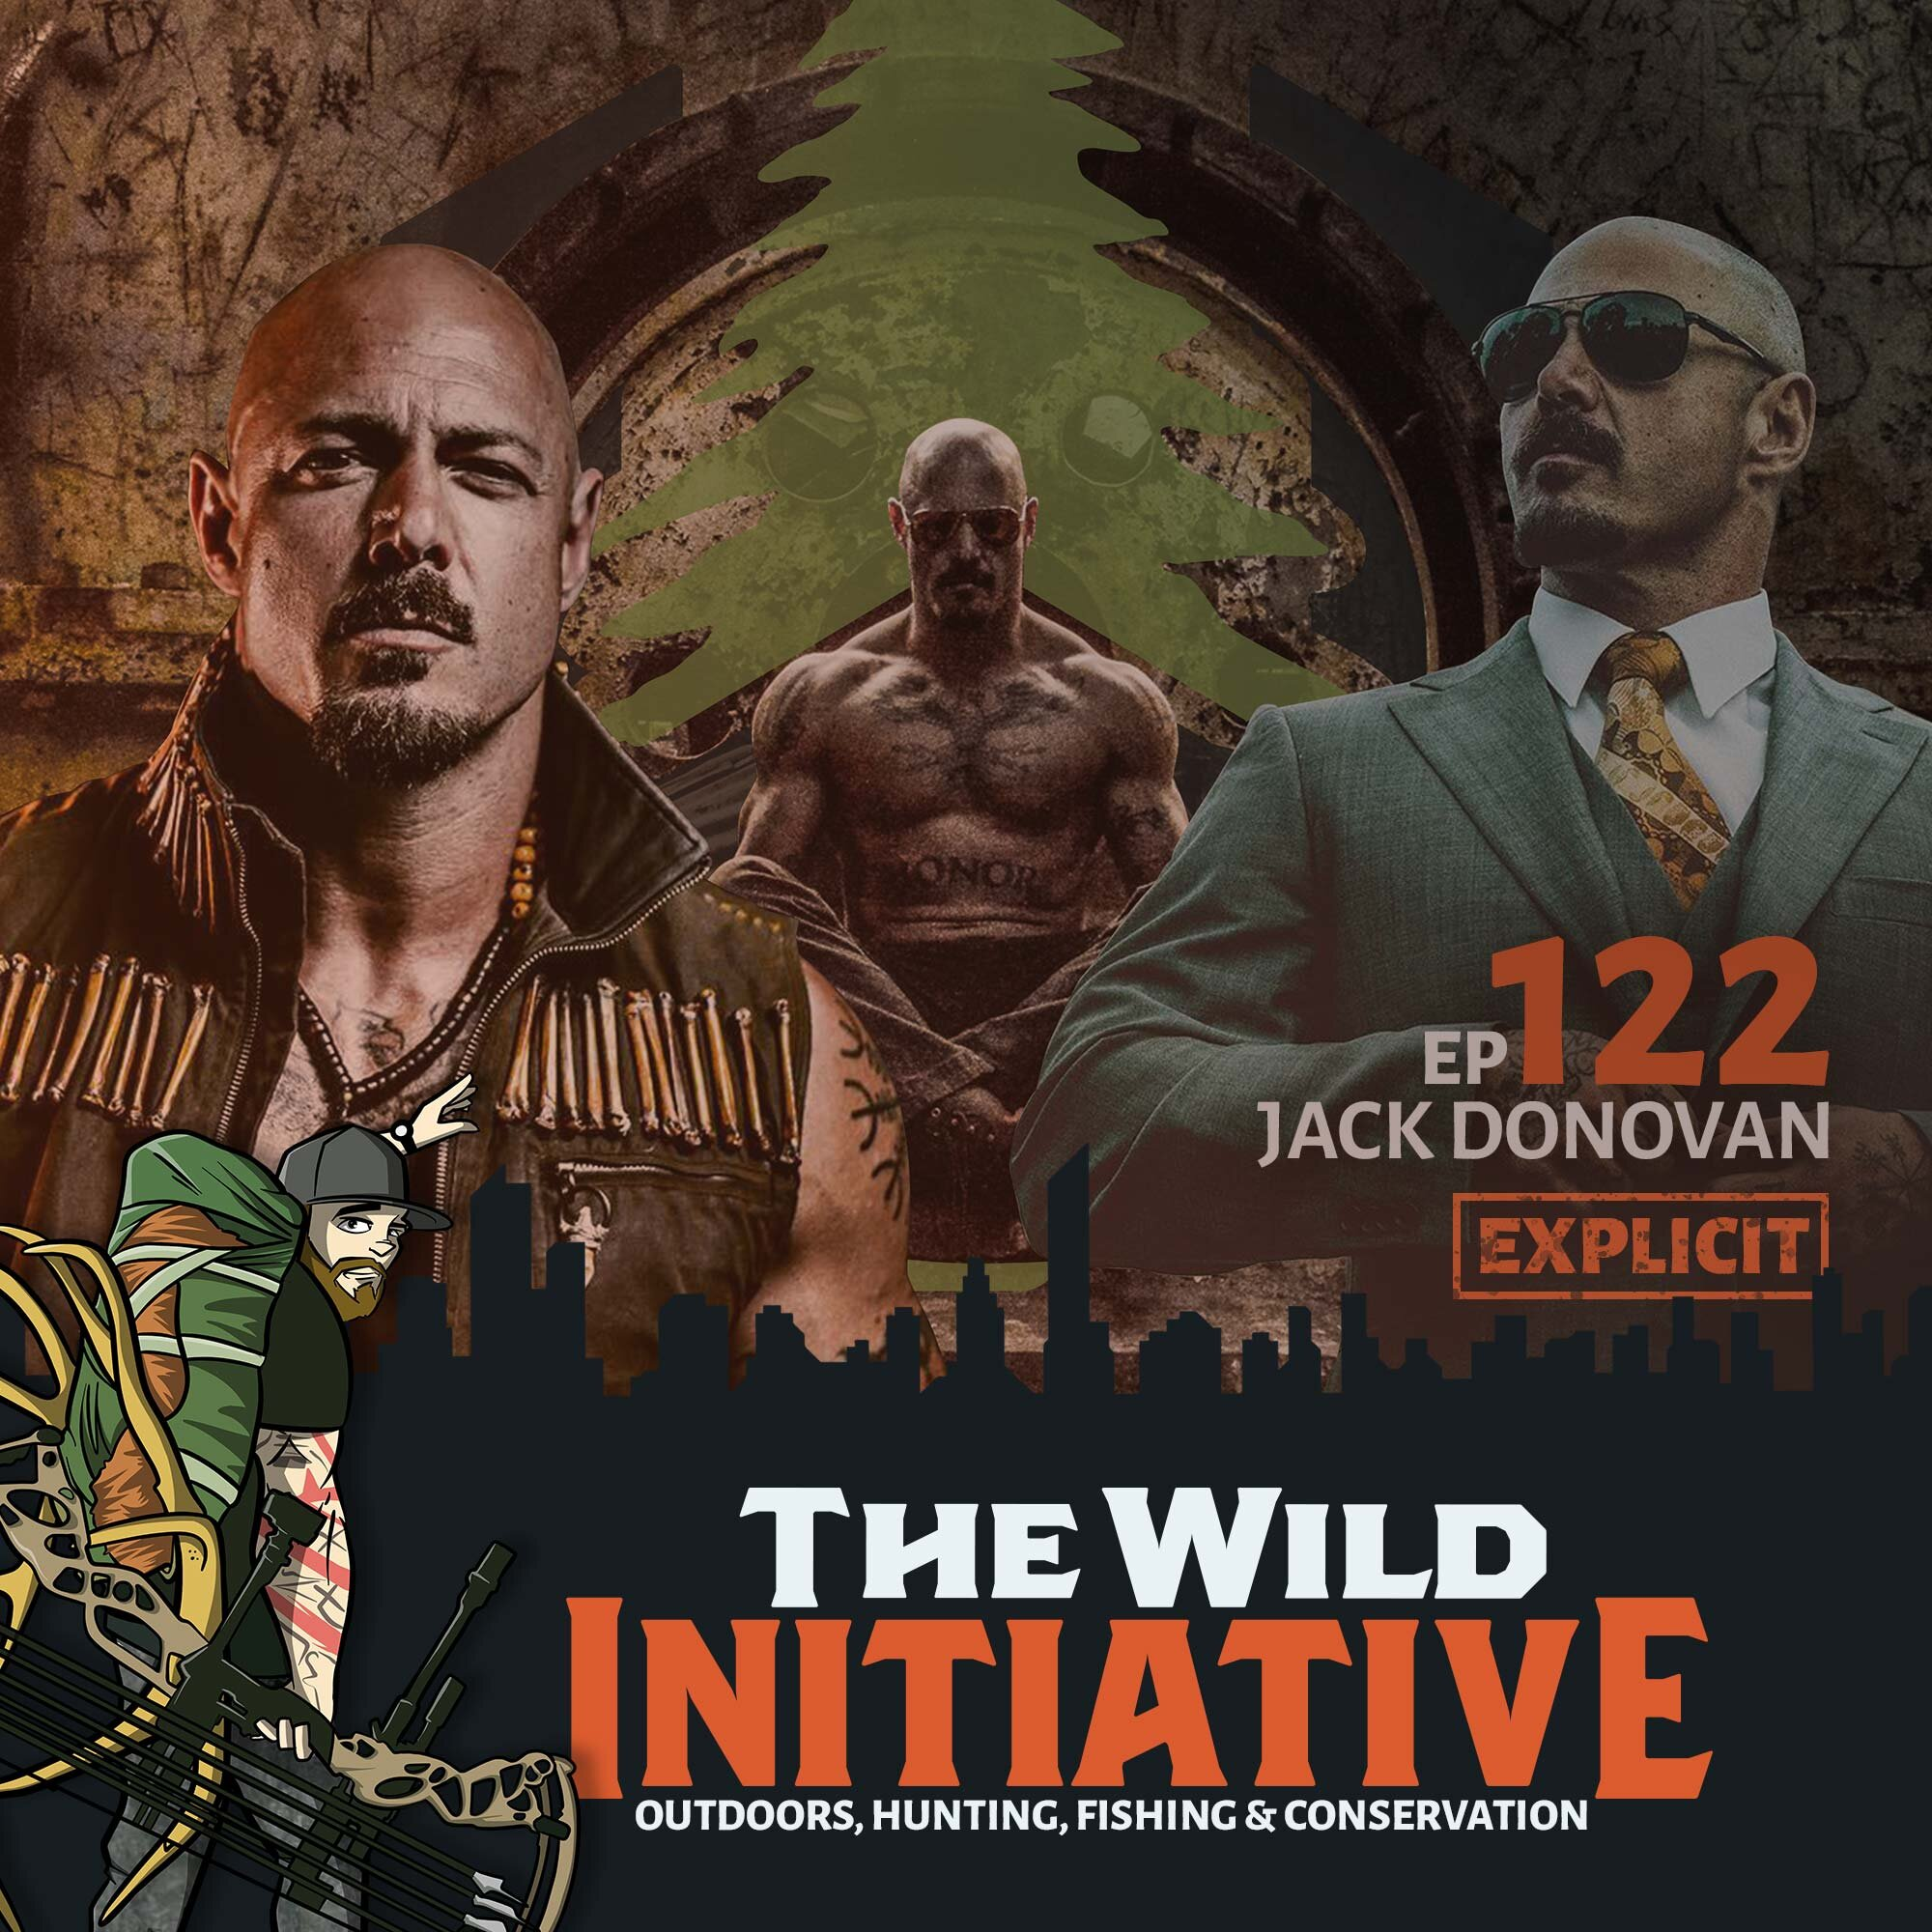 Ep 122 Jack Donovan *EXPLICIT* - The Wild Initiative - Outdoors, Hunting, Fishing & Conservation